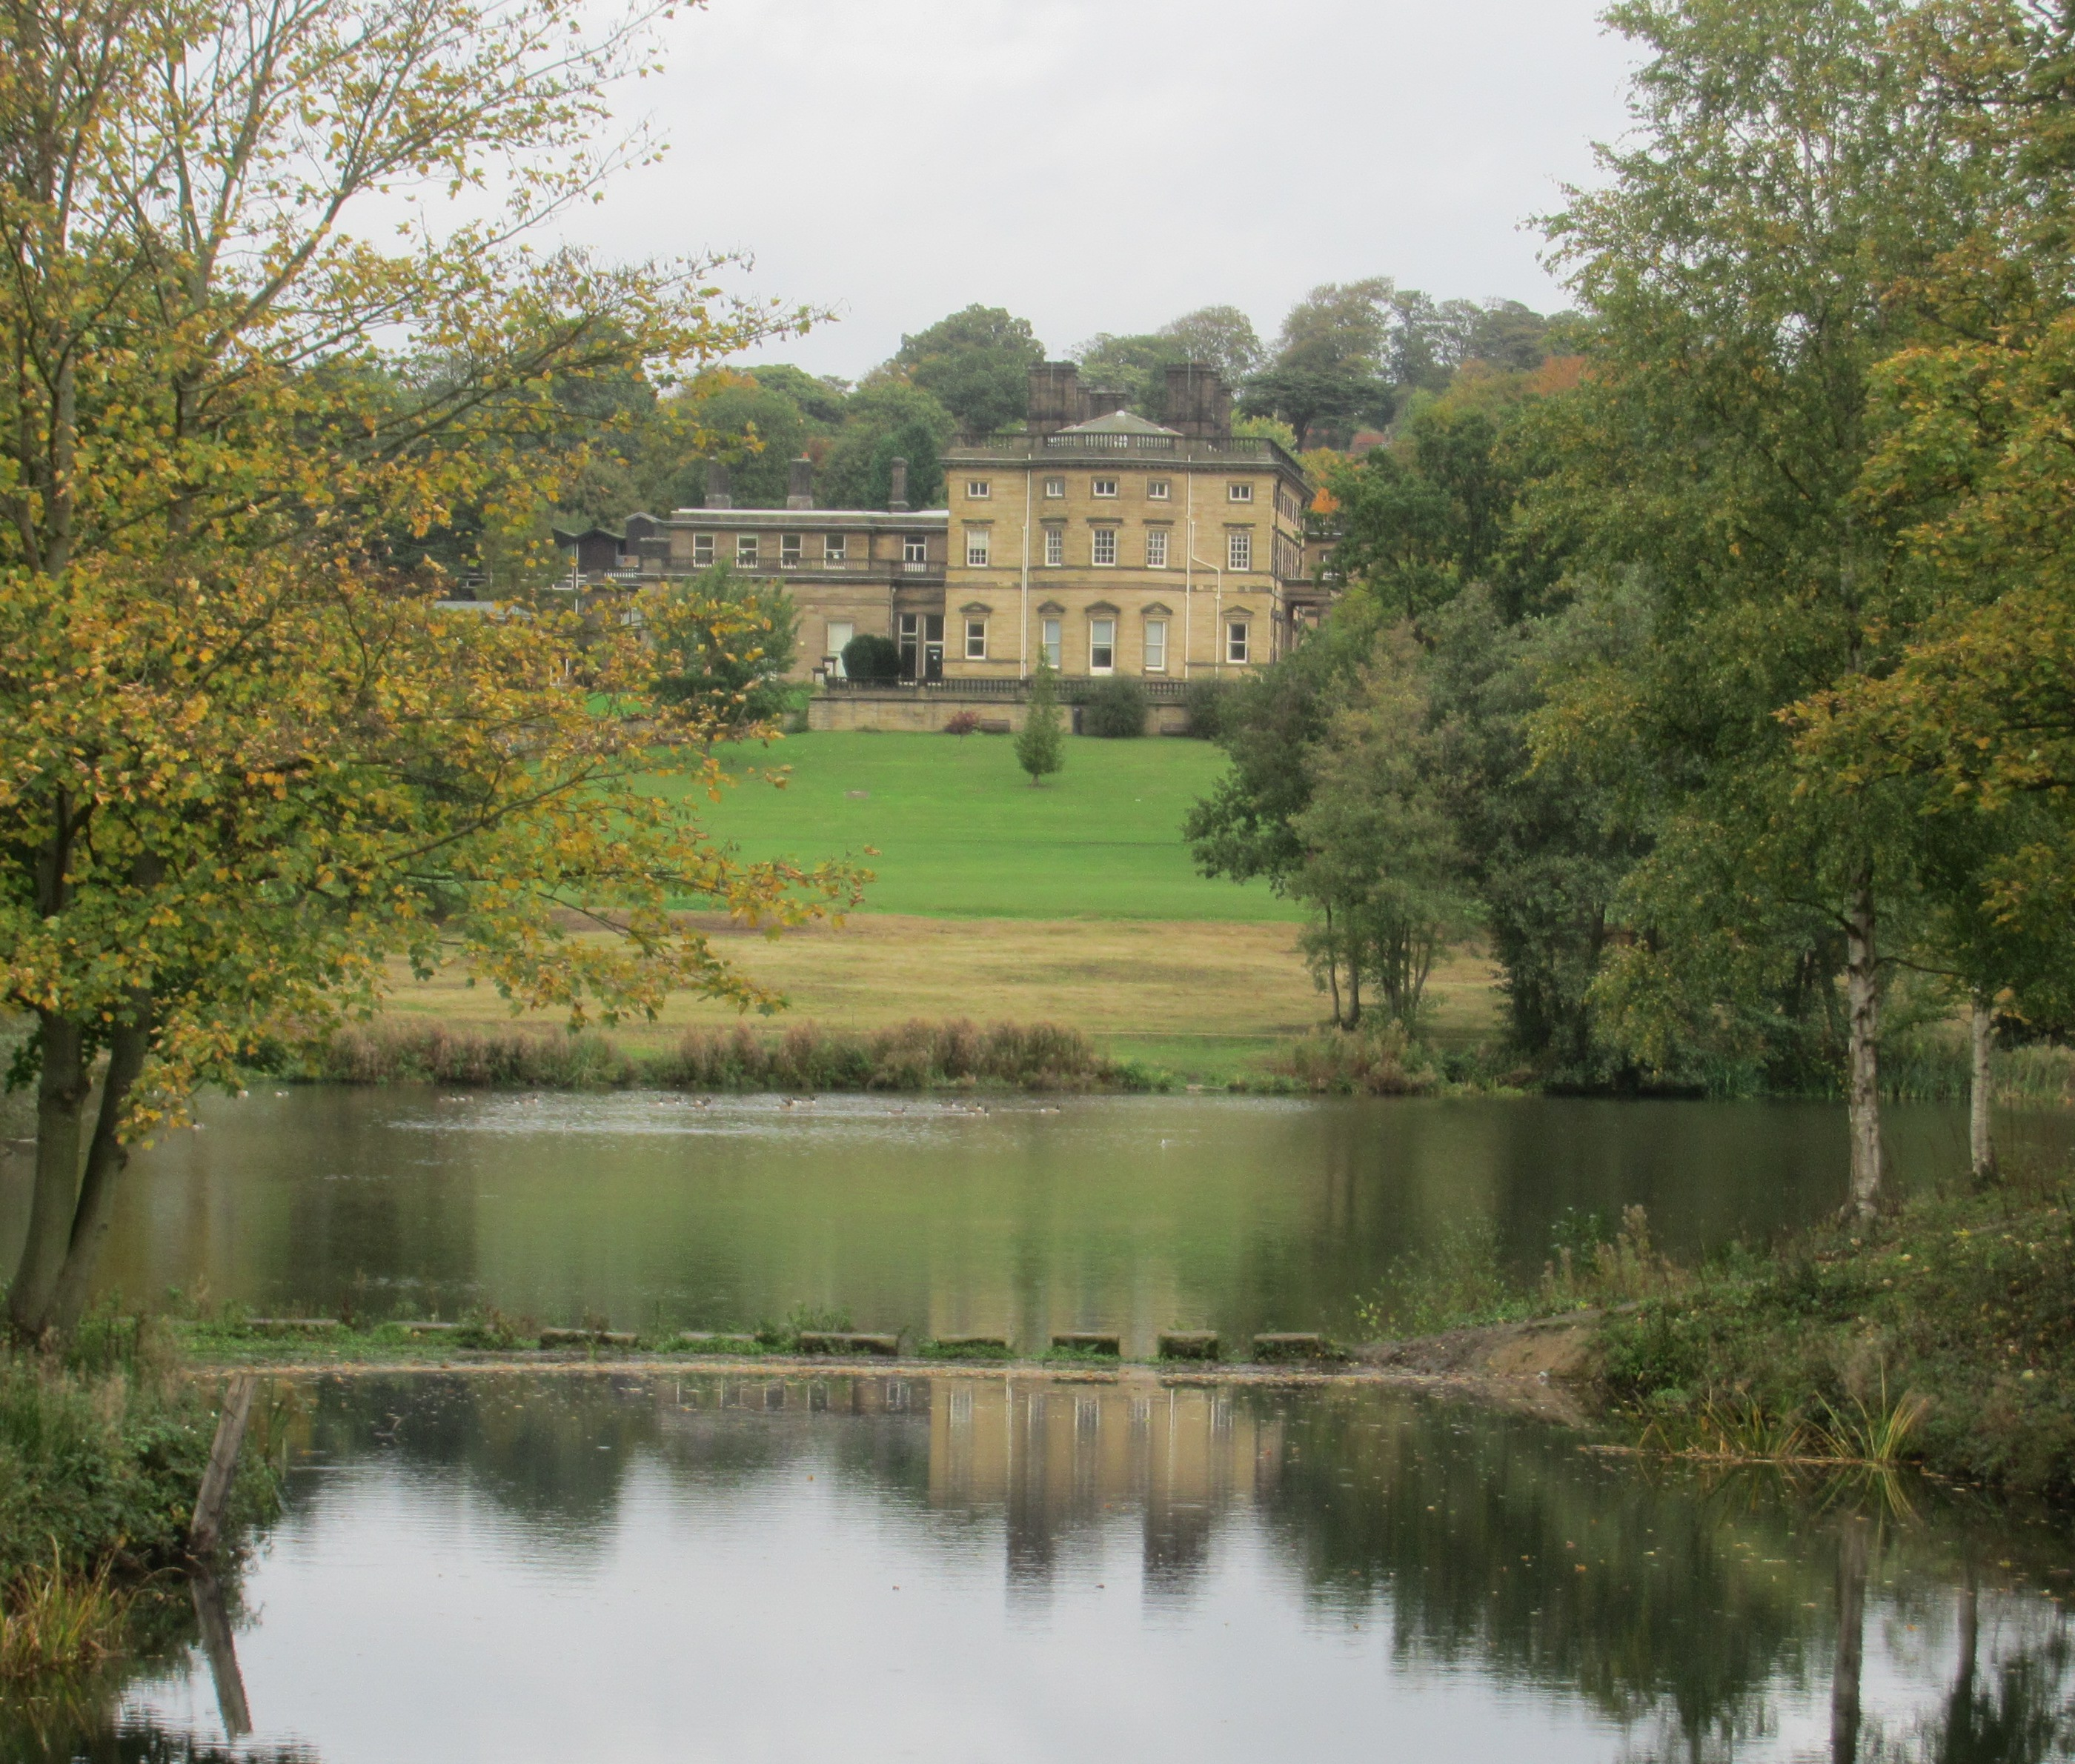 Grand Halls Parks And Sculpture Of South Yorkshire In Autumns Glory I Do Not Despair